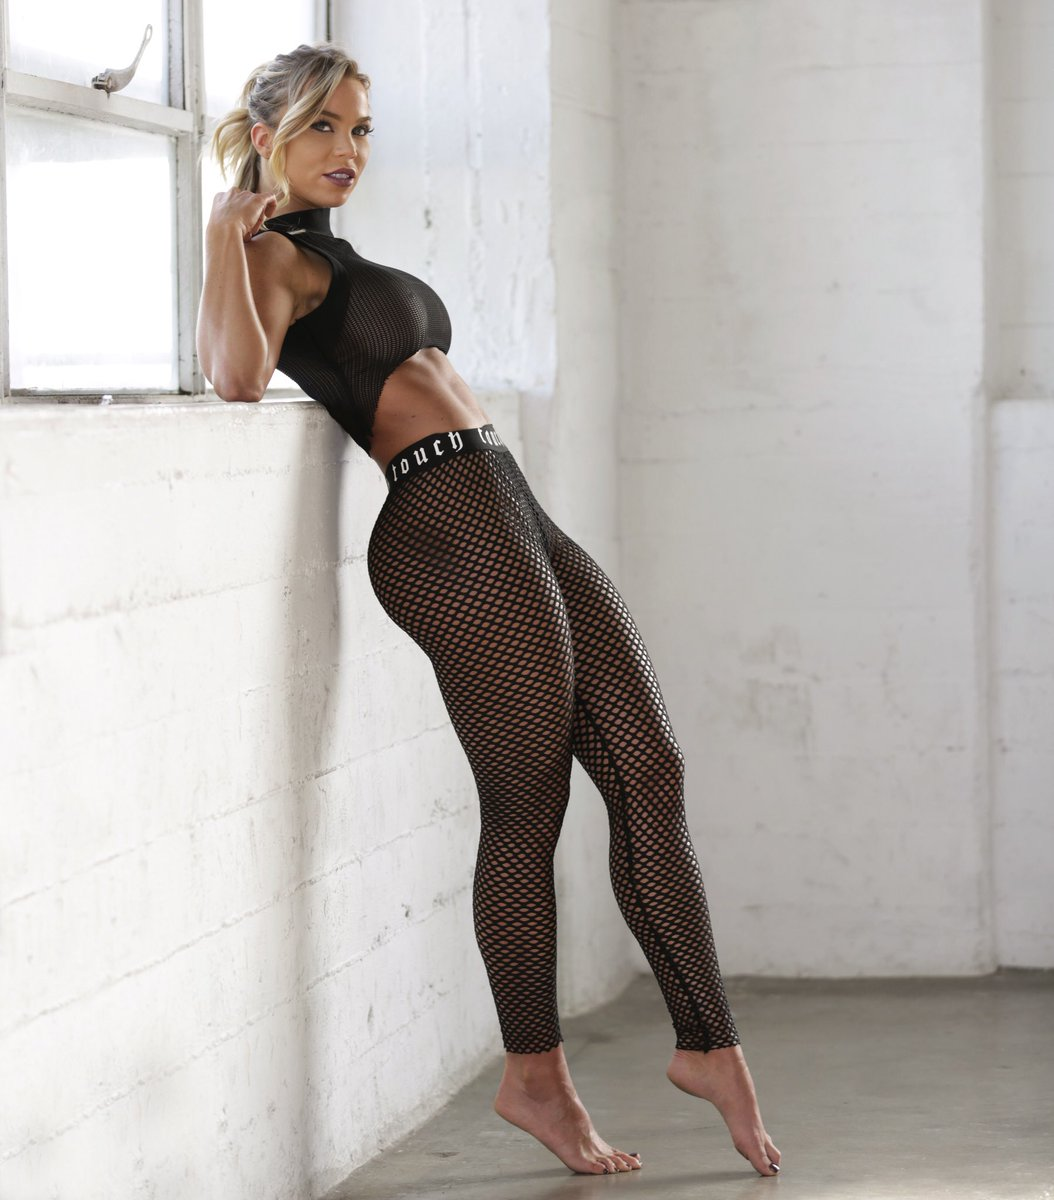 Lauren Drain naked (44 photo) Video, iCloud, braless